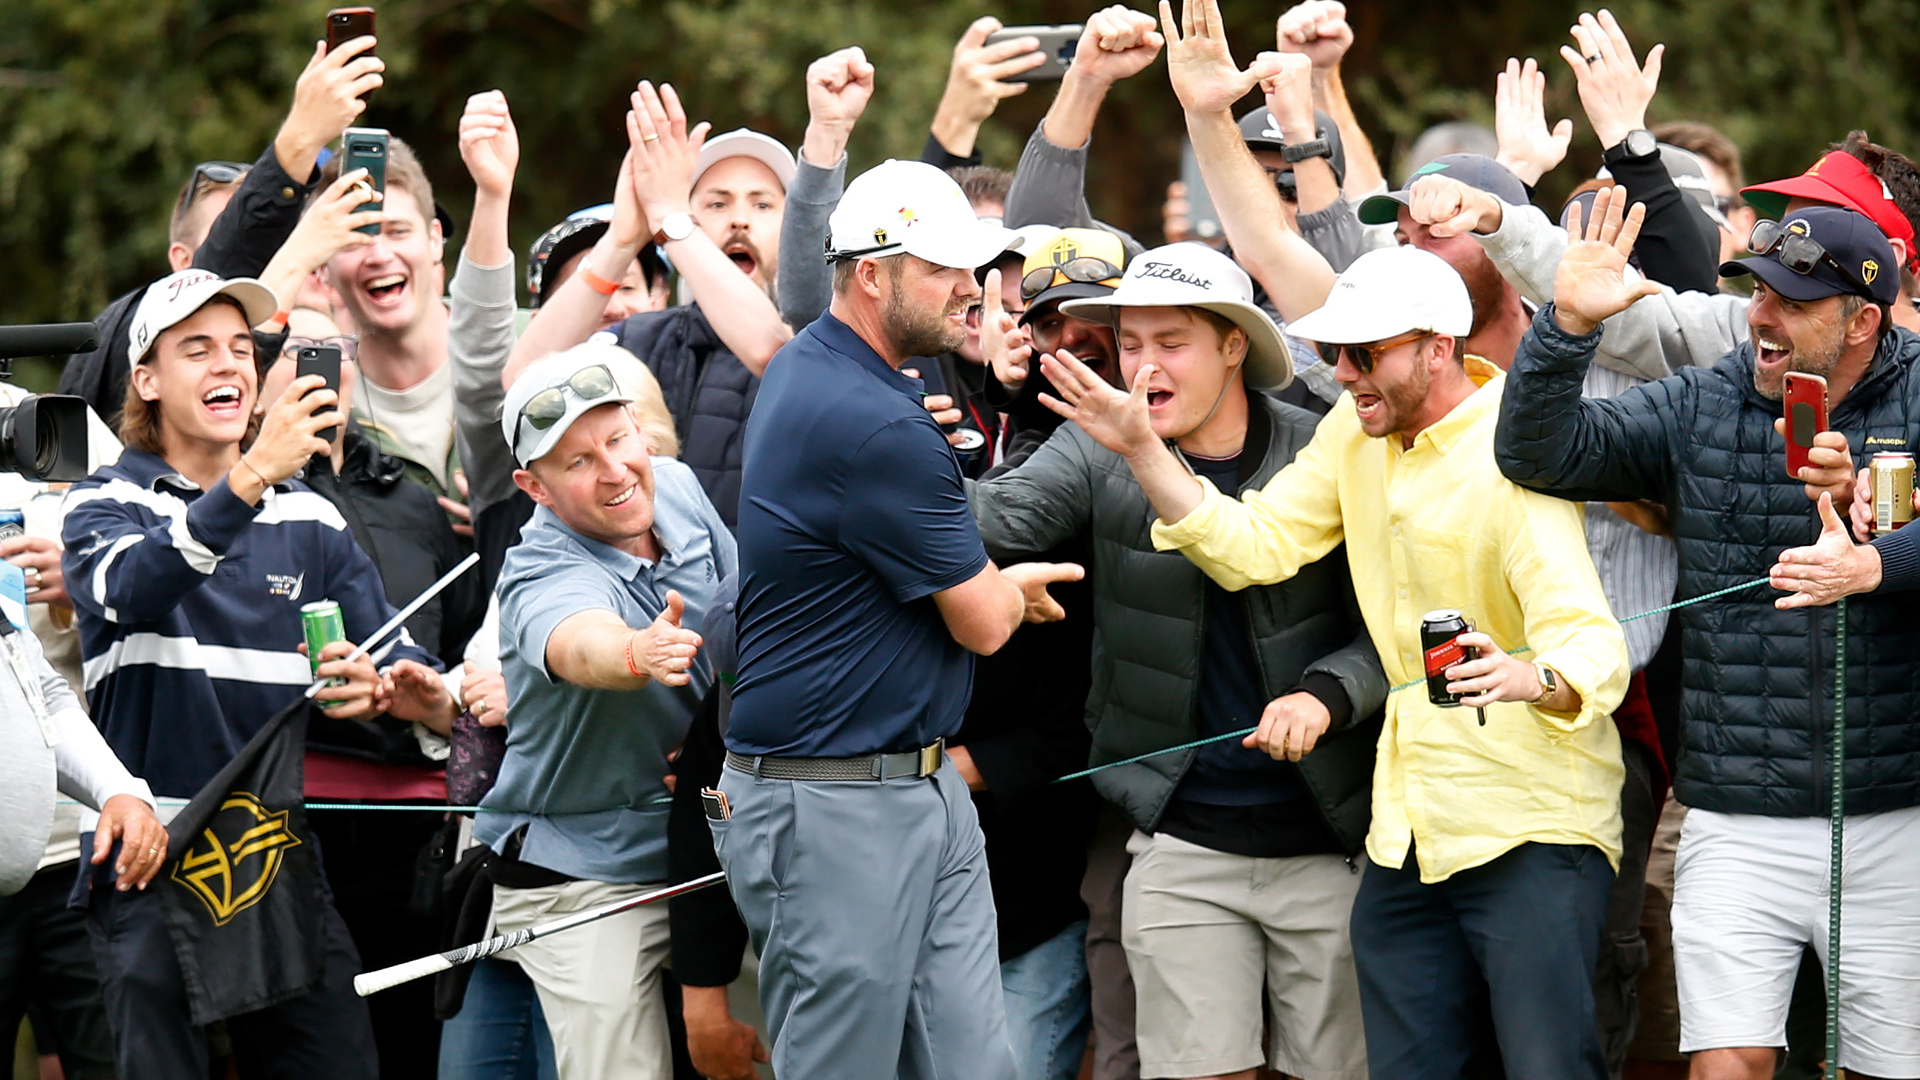 Presidents Cup 2019: Leishman and Ancer's incredible comeback against Thomas, Fowler